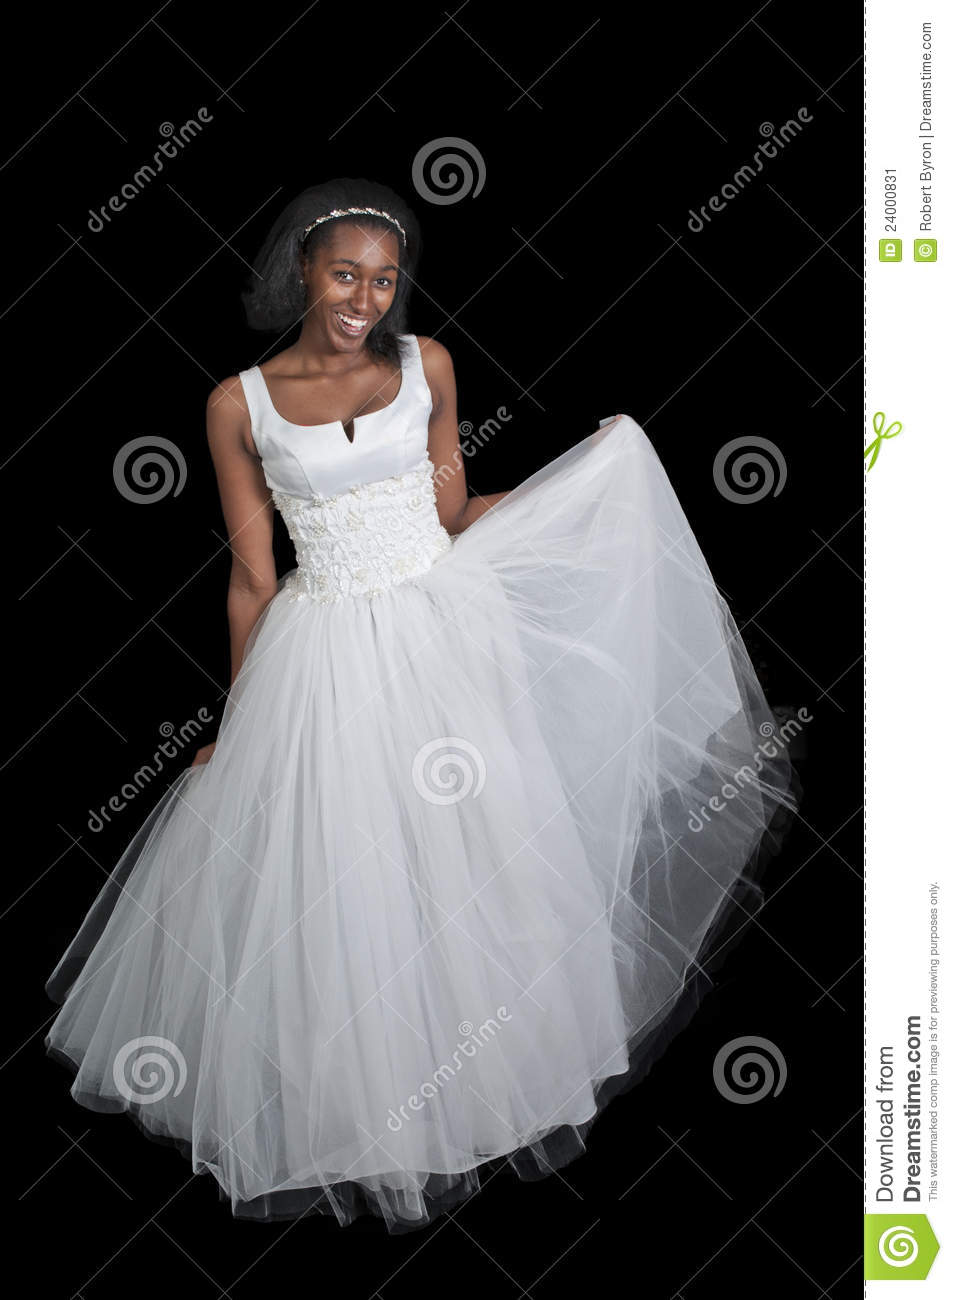 More Similar Stock Images Of Black Woman In Wedding Dress